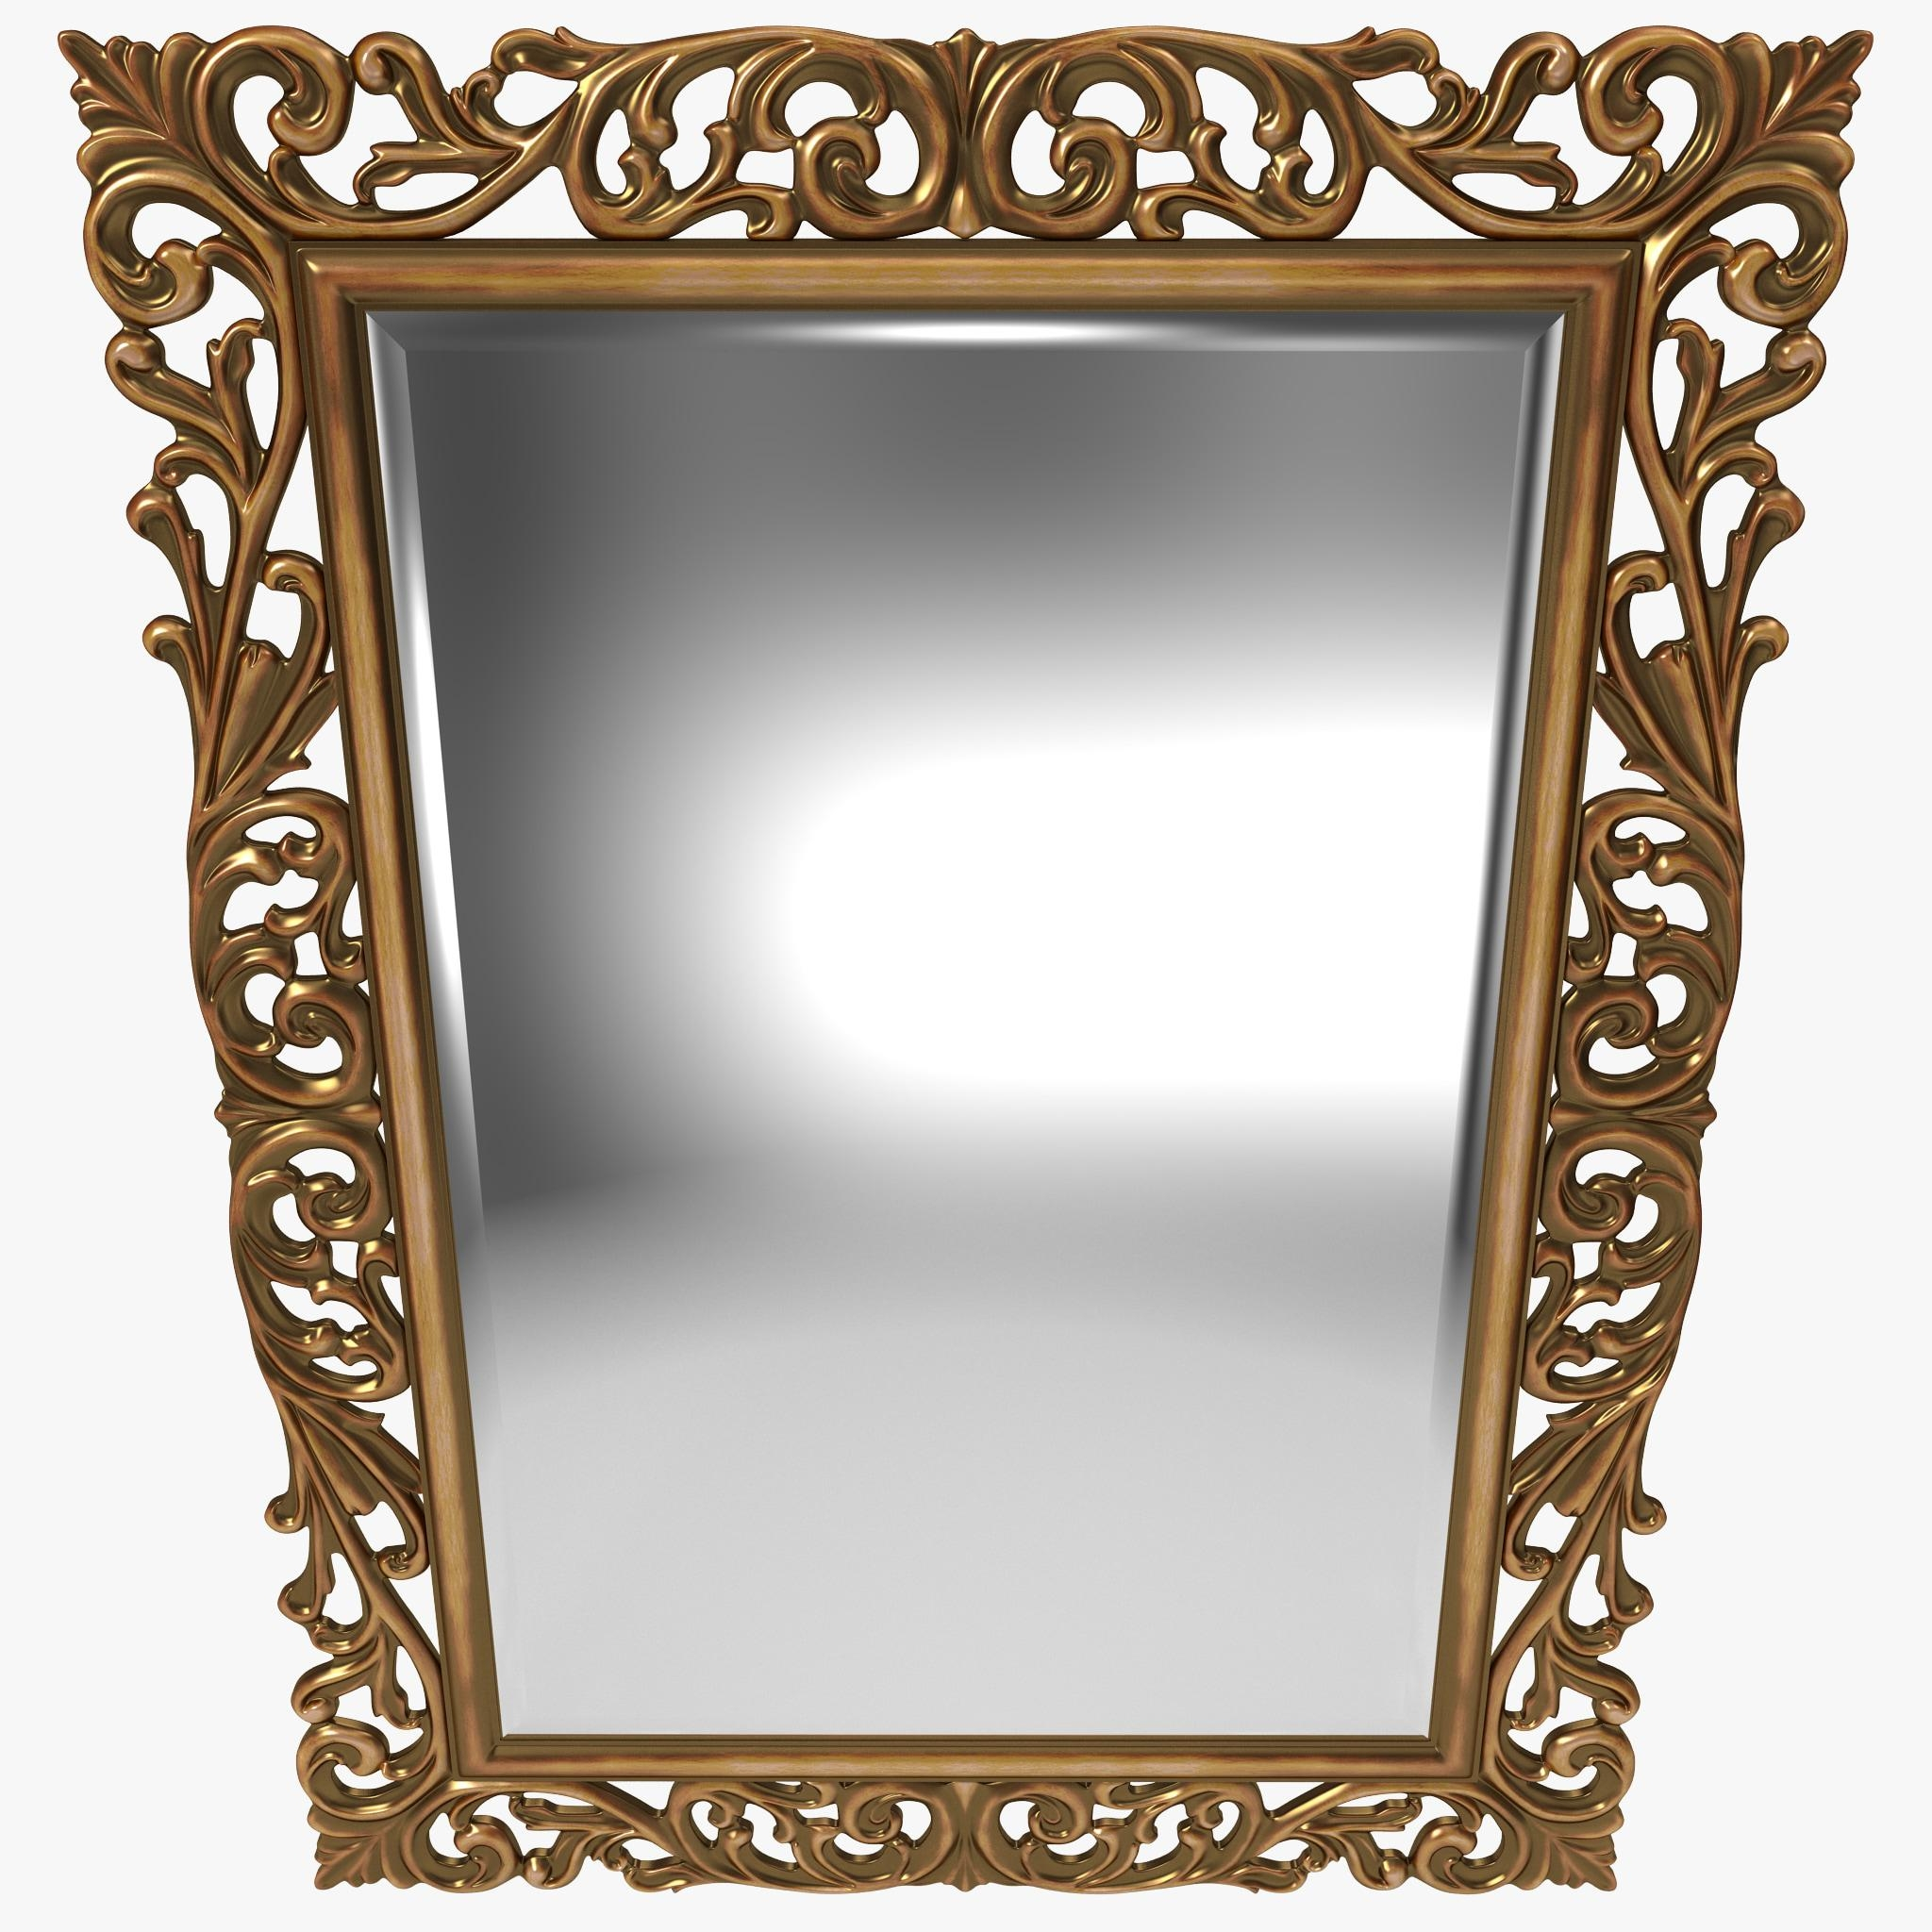 Mirror 3D Models | Turbosquid Pertaining To Gold Ornate Mirrors (View 5 of 20)